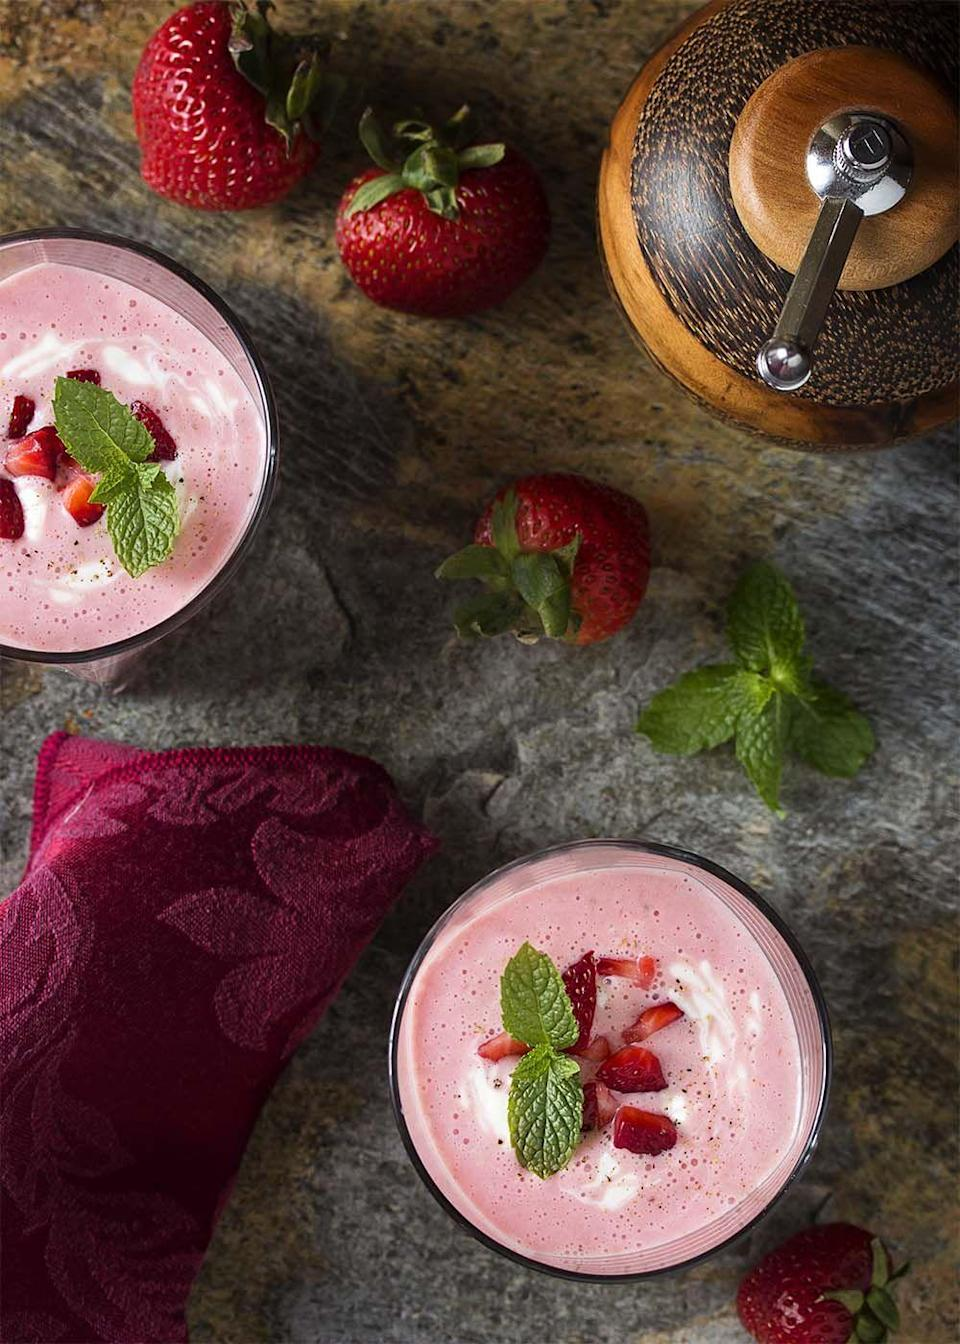 """<p>Although this dish is sweet, this blogger swears by a sprinkle of black pepper. She notes it actually """"enhances the strawberry flavor and brings out its sweetness.""""</p><p><strong>Get the recipe at <a href=""""http://www.justalittlebitofbacon.com/chilled-strawberry-yogurt-soup/"""" rel=""""nofollow noopener"""" target=""""_blank"""" data-ylk=""""slk:Just a Little Bit of Bacon"""" class=""""link rapid-noclick-resp"""">Just a Little Bit of Bacon</a>.</strong></p>"""